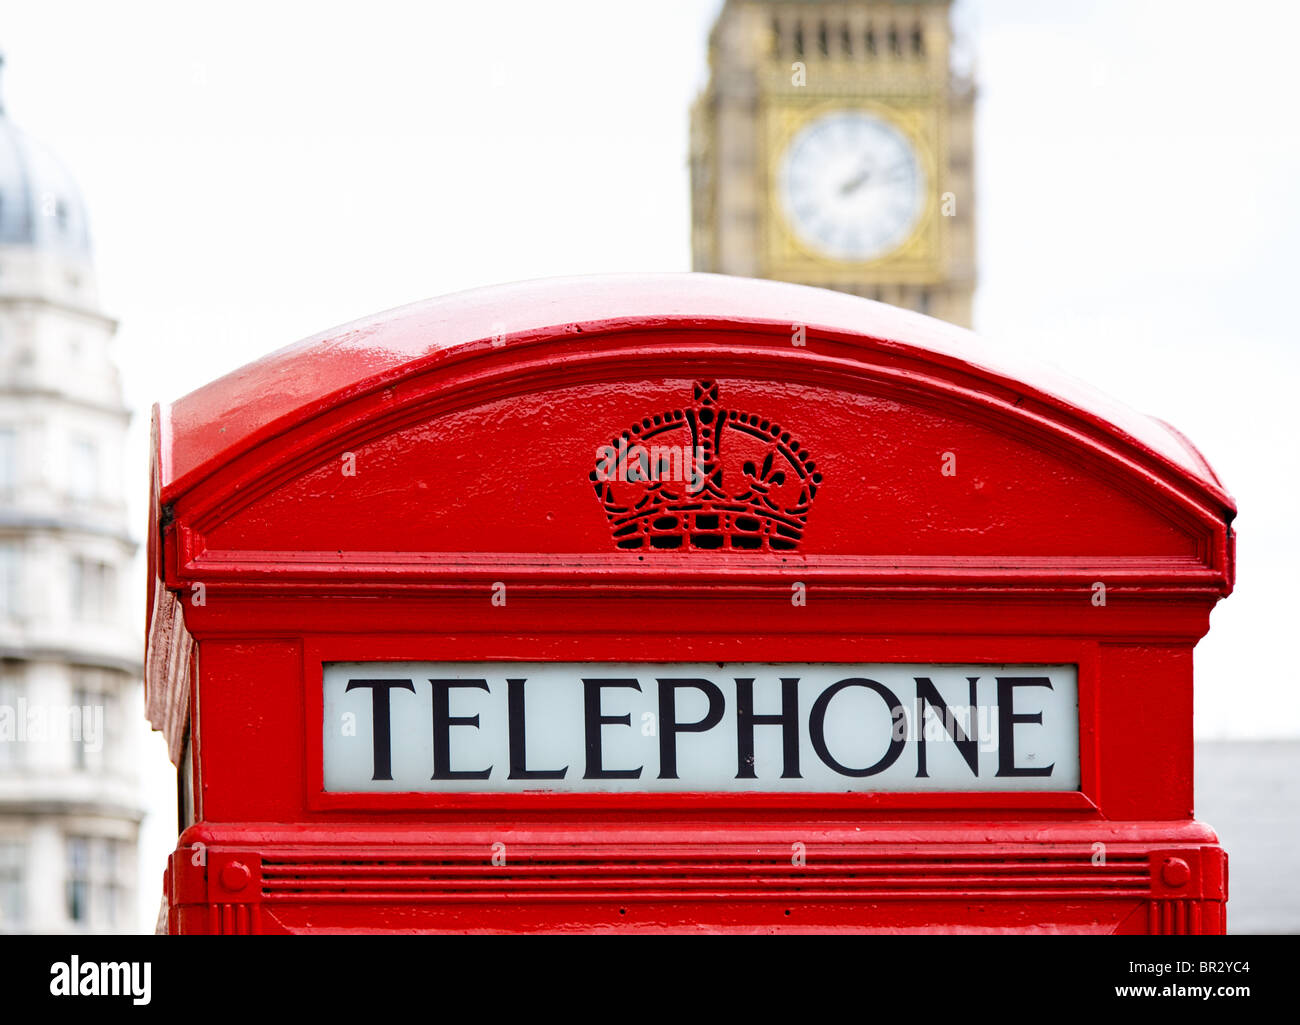 London telephone box with big ben in background - Stock Image